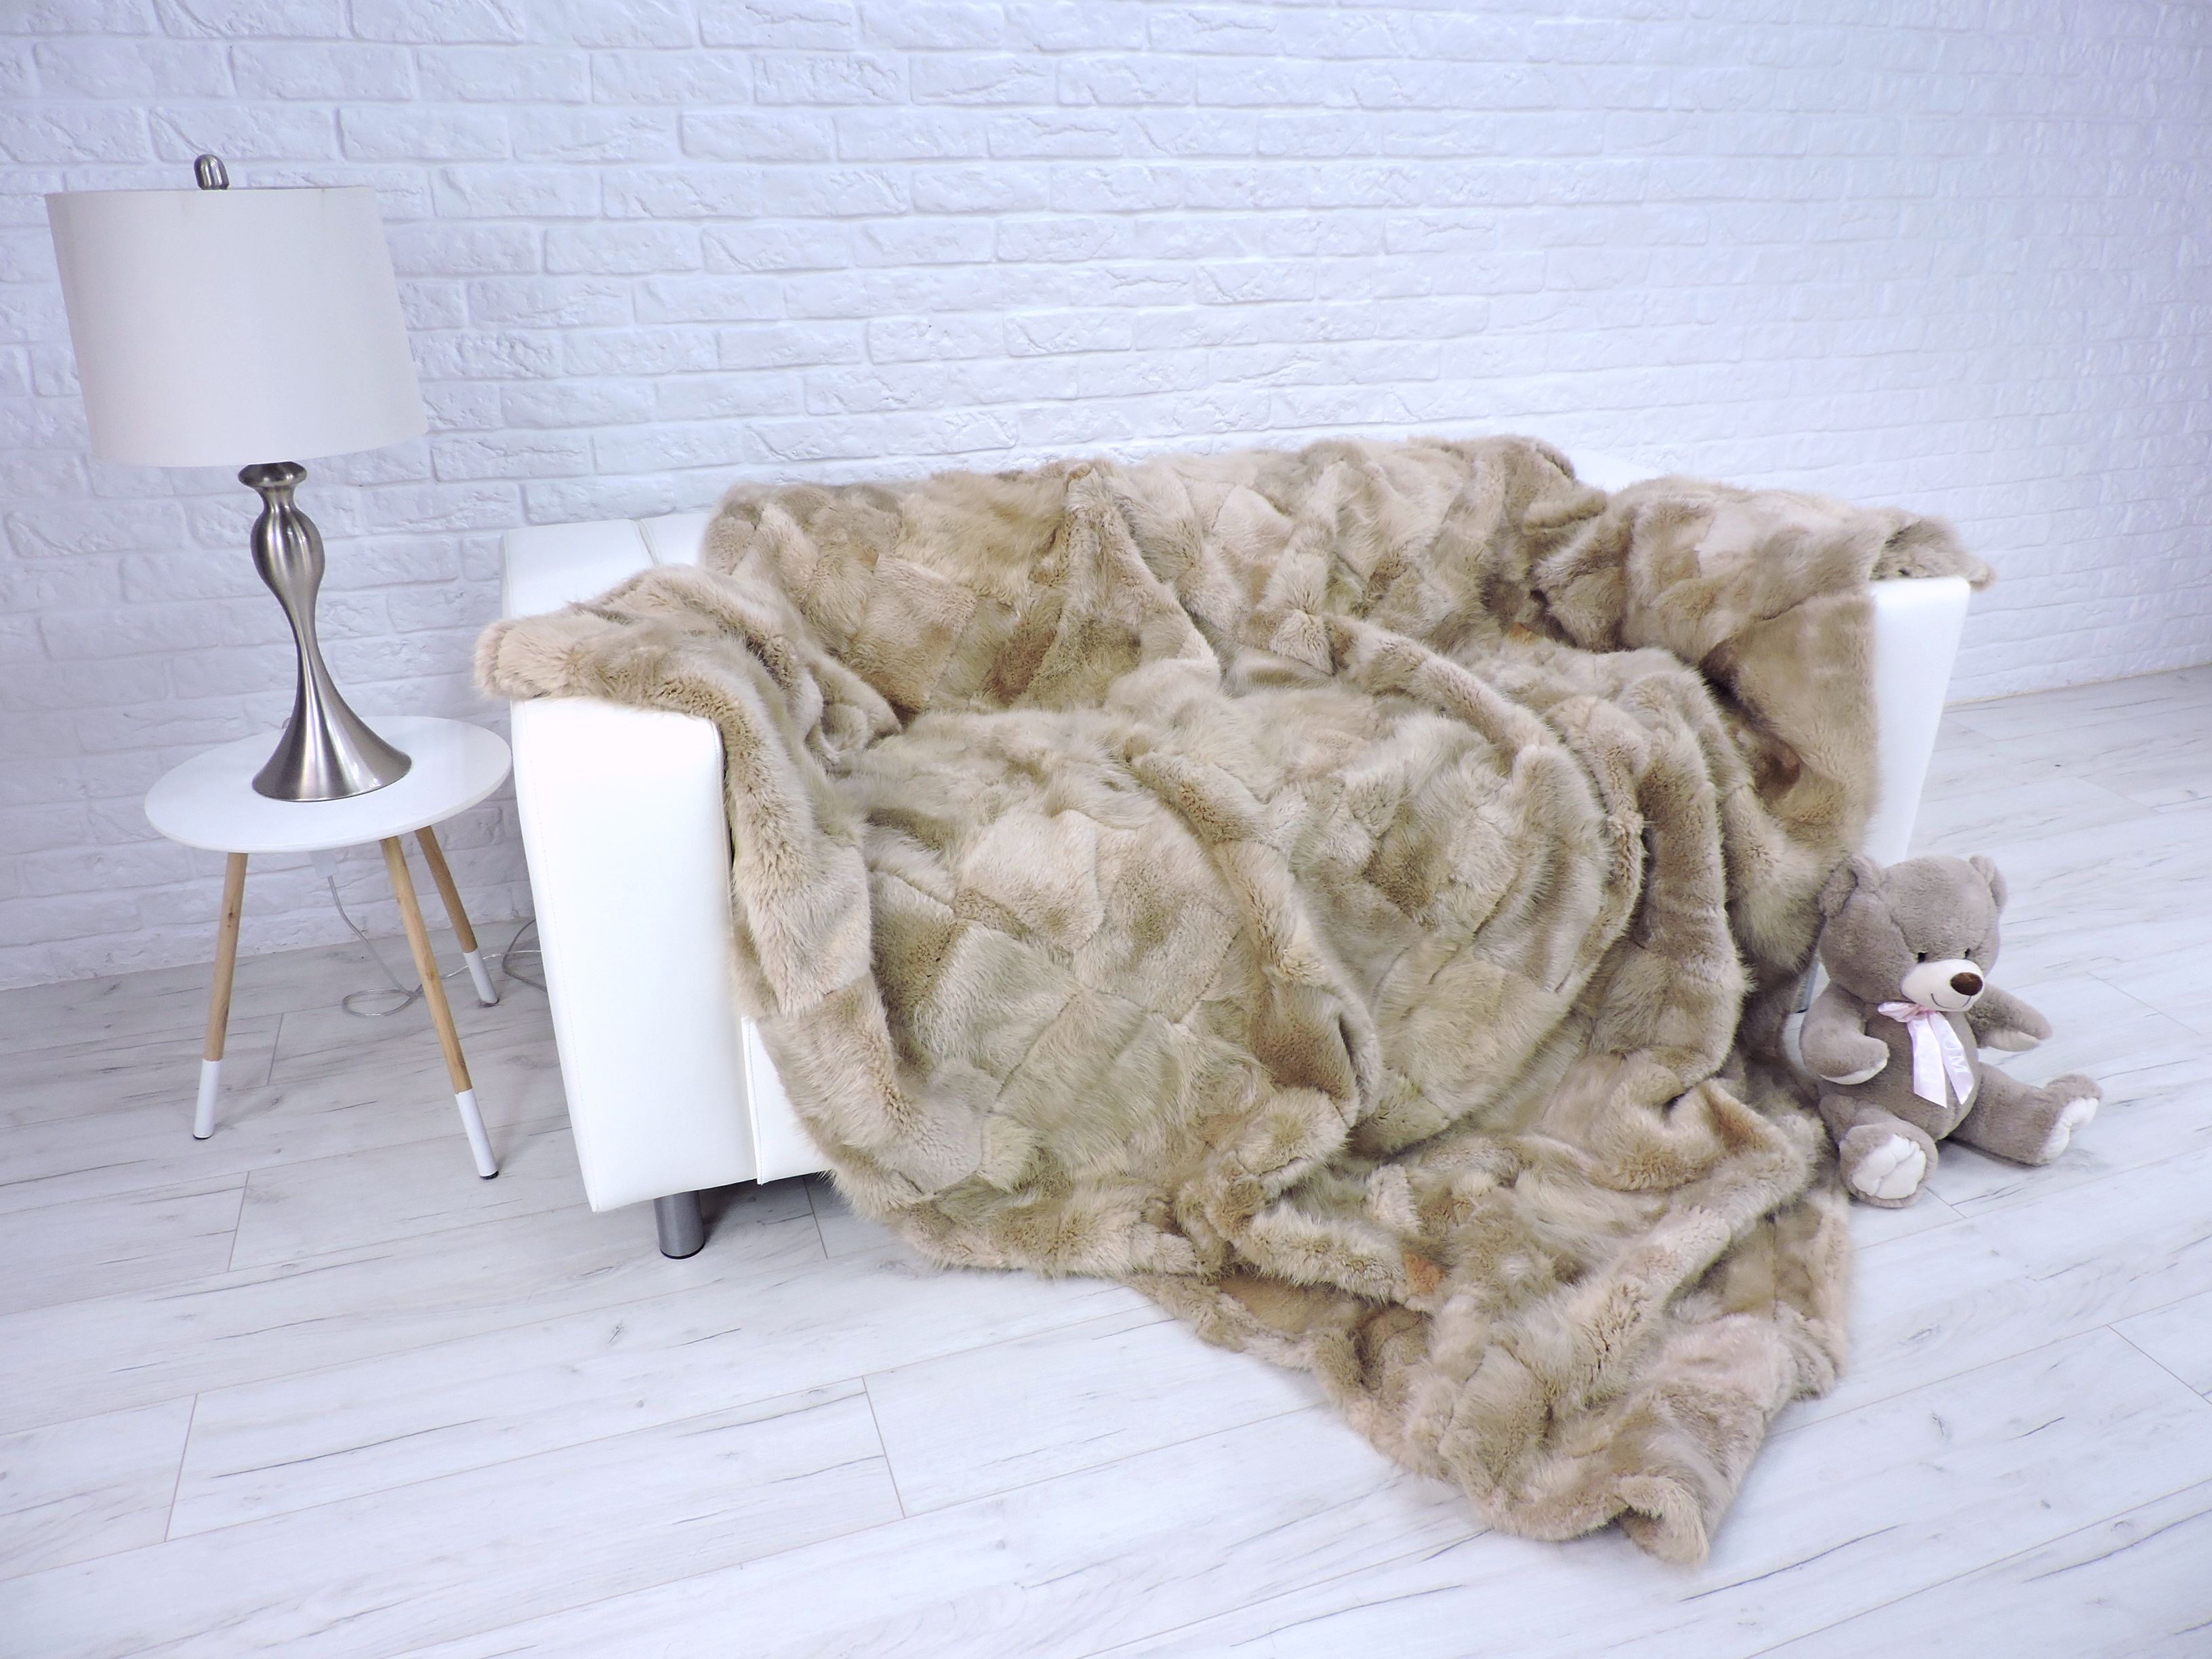 Luxury Real Beaver Fur Blanket Fur Throw Light Beige Fur Rug Sofa Cover Sofa Cover Home Decor King Size Blanket 310 In 2020 Fur Blanket Blanket King Size Blanket